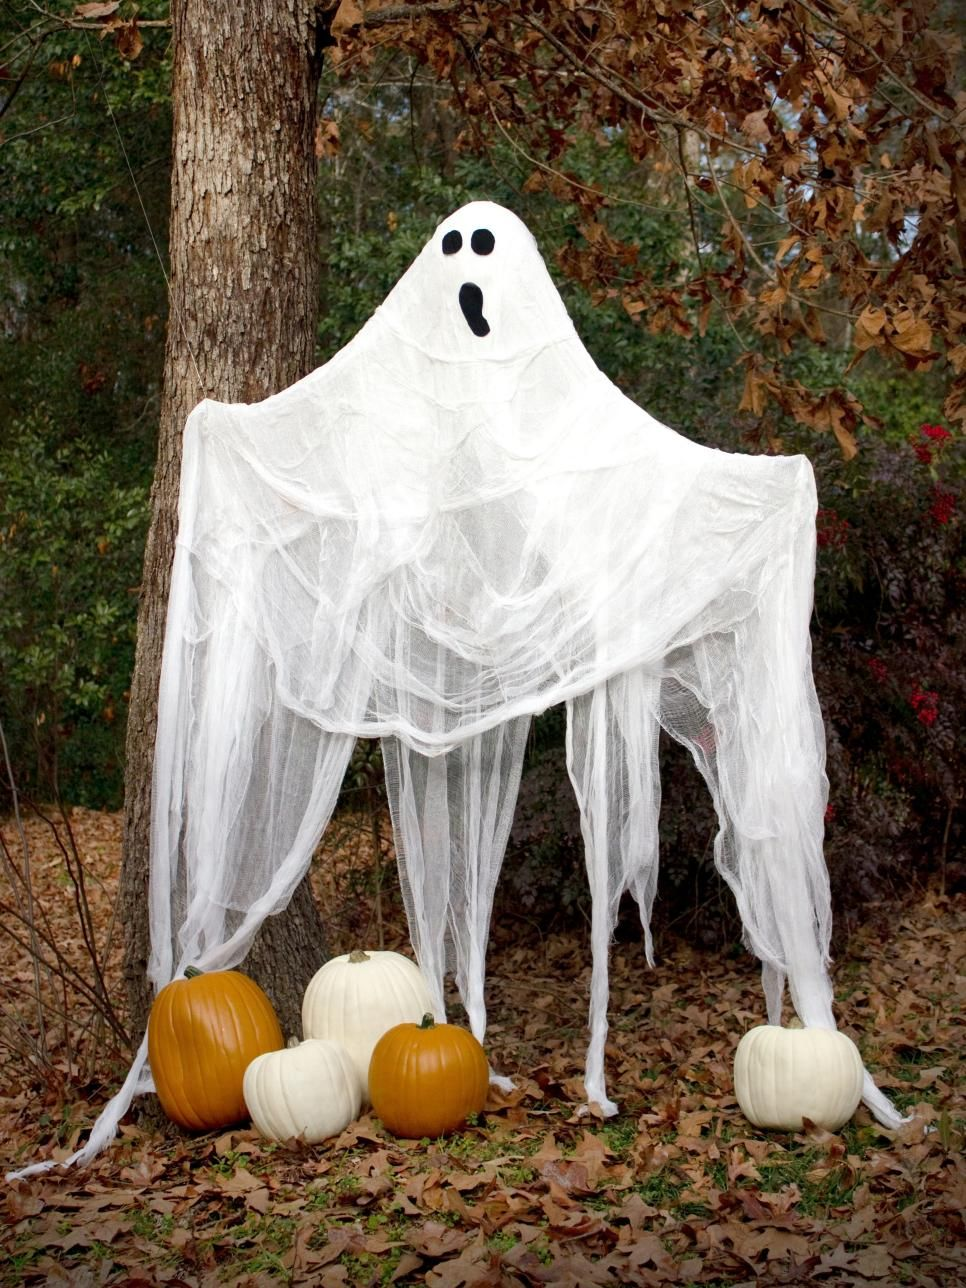 65+ DIY Halloween Decorations  Decorating Ideas Decoration - halloween decorations diy